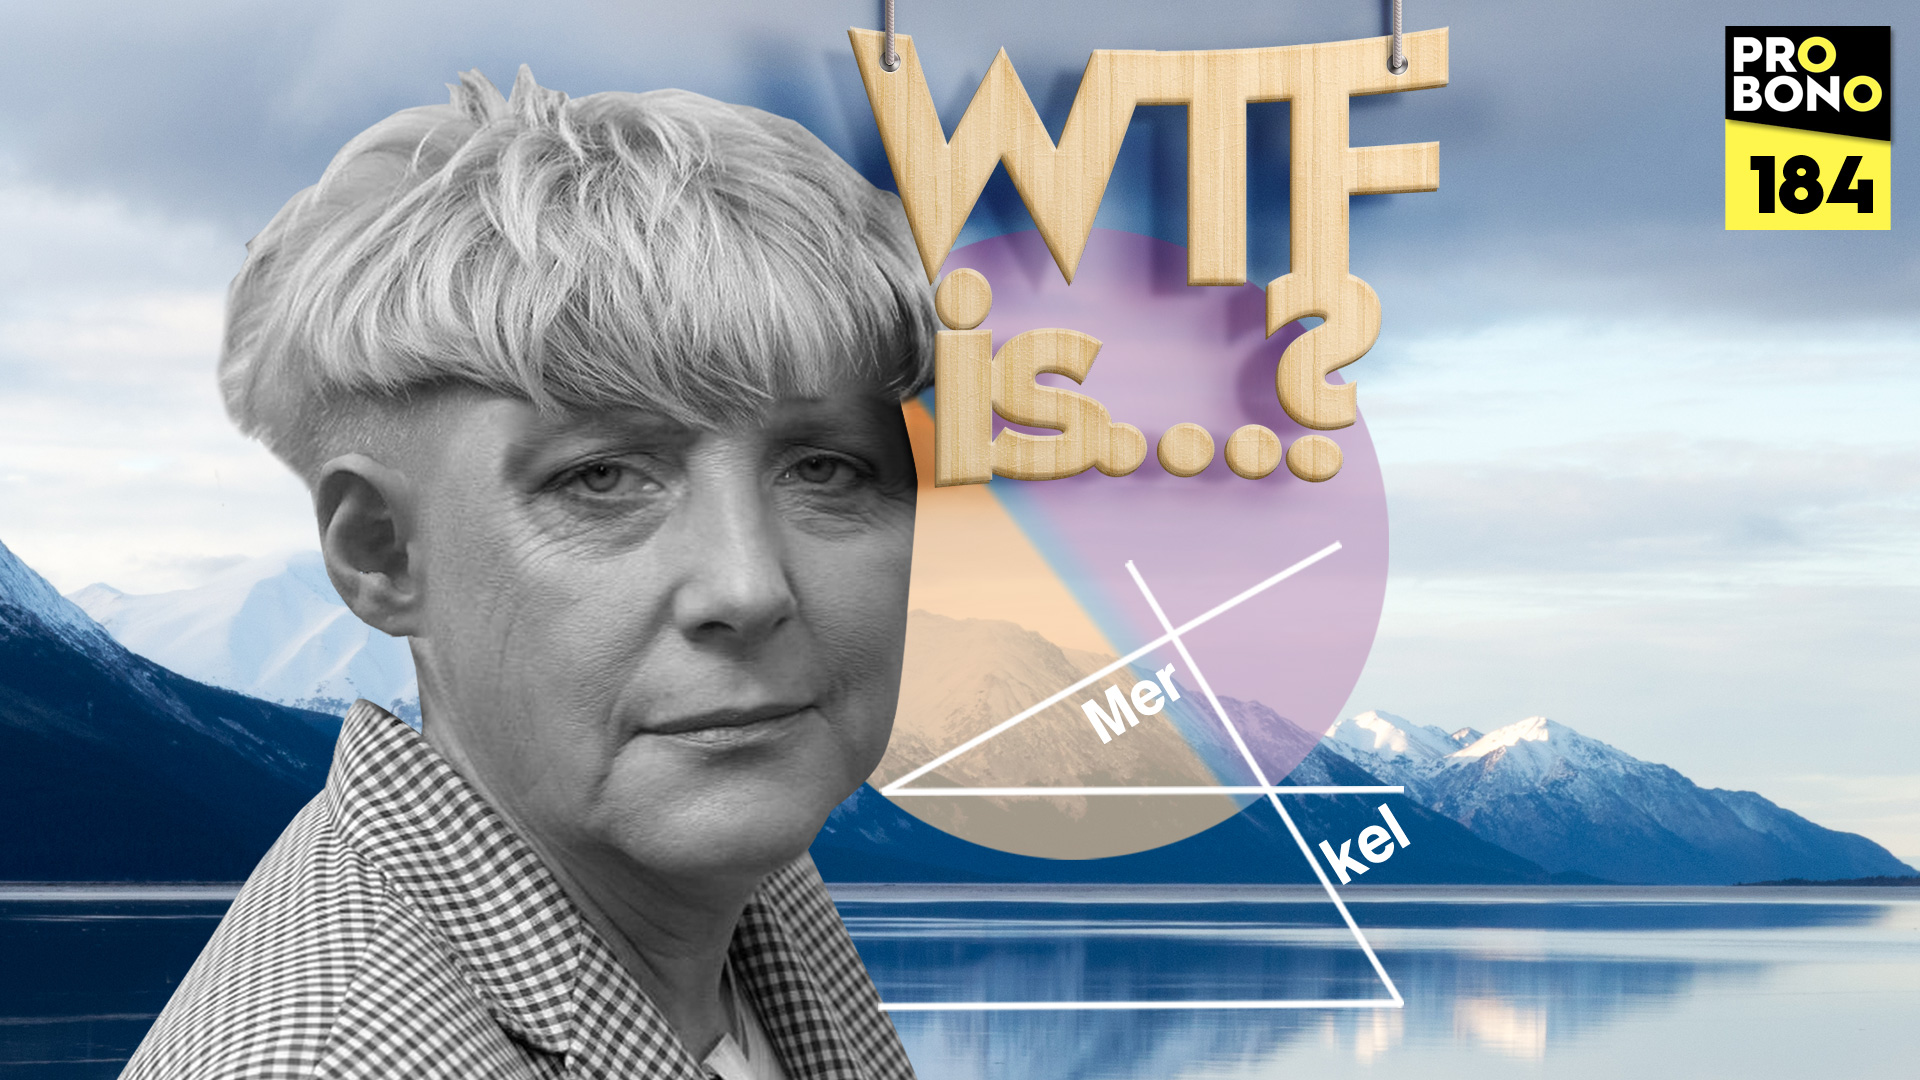 What the fuck is MERKEL? German Slow Politics explained (probono Magazin)